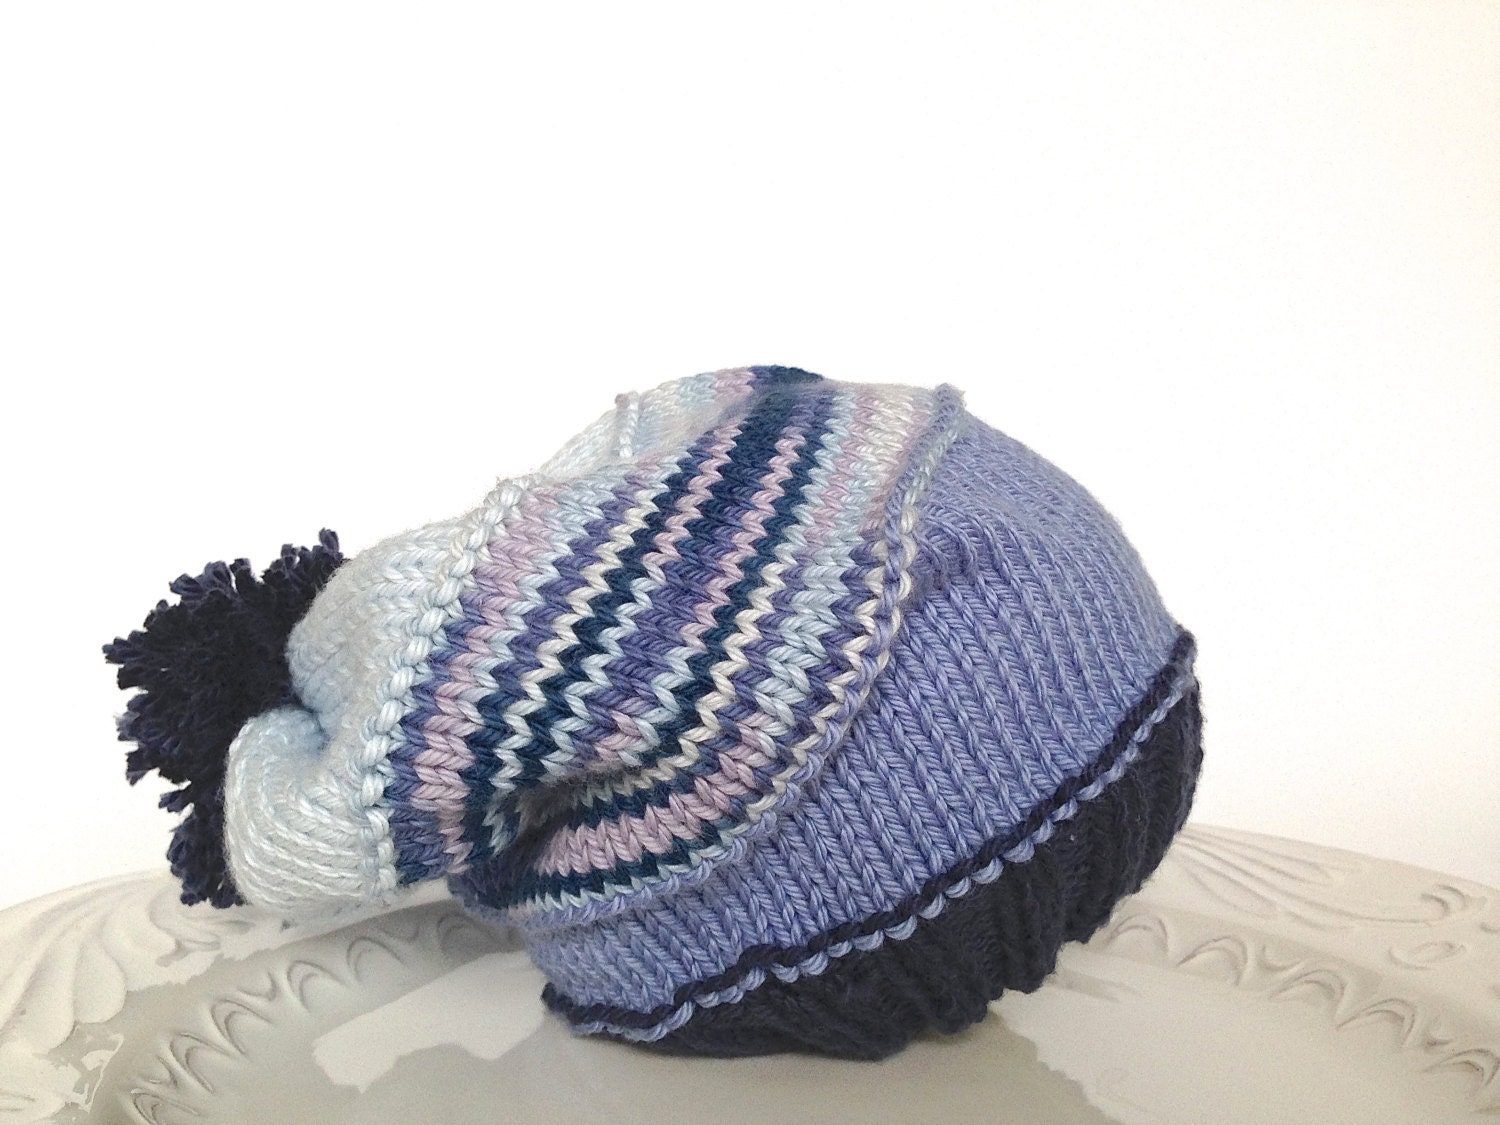 Slouchy knitted hat for baby boy in denim colors - 100 % cotton, ready to ship - TinyLoveGifts